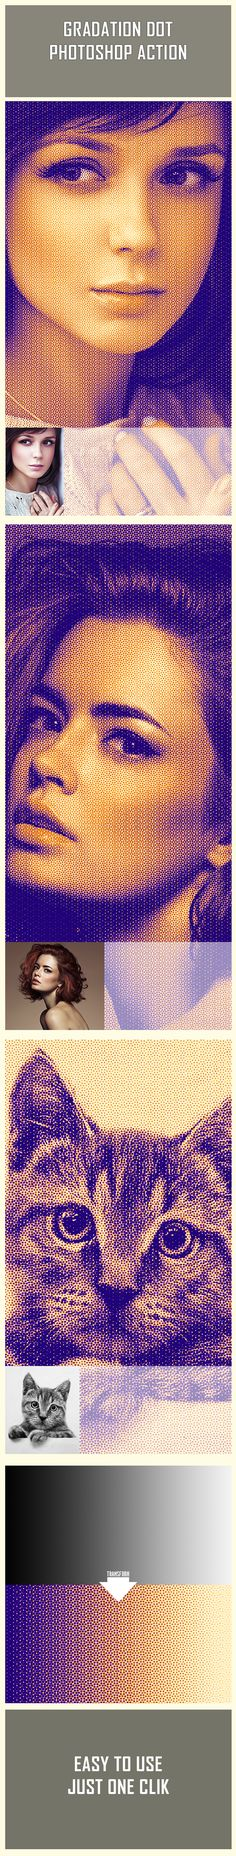 Gradation Dot - #Photo Effects #Actions Download here: https://graphicriver.net/item/gradation-dot/19377512?ref=alena994